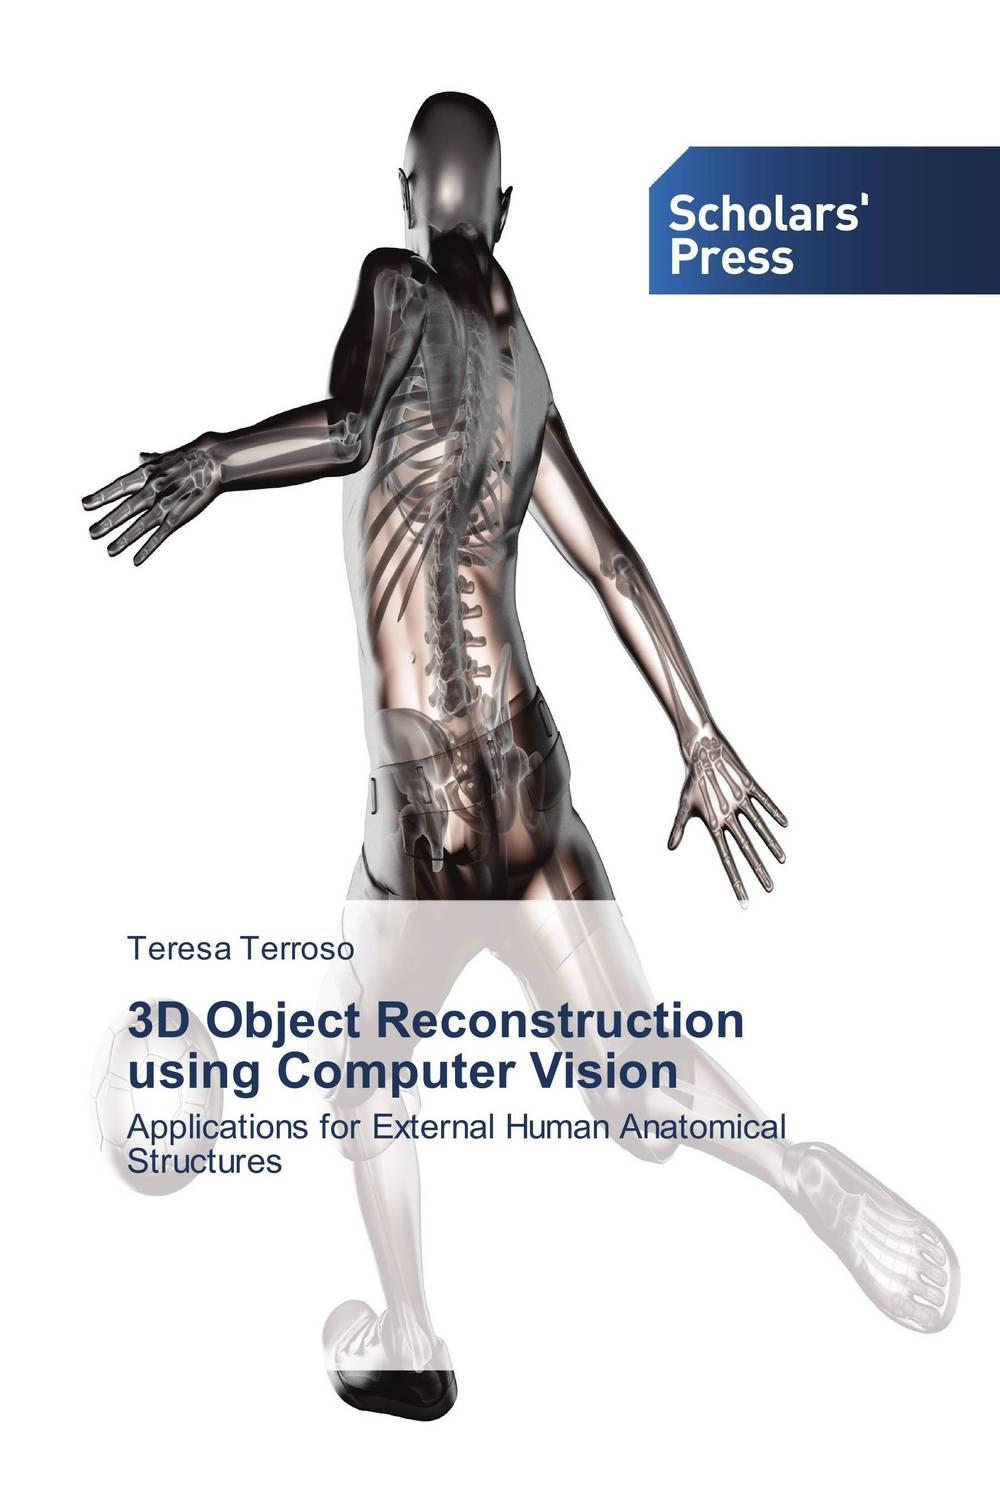 3D Object Reconstruction using Computer Vision anatomy based models for computer reconstruction of humans and animals